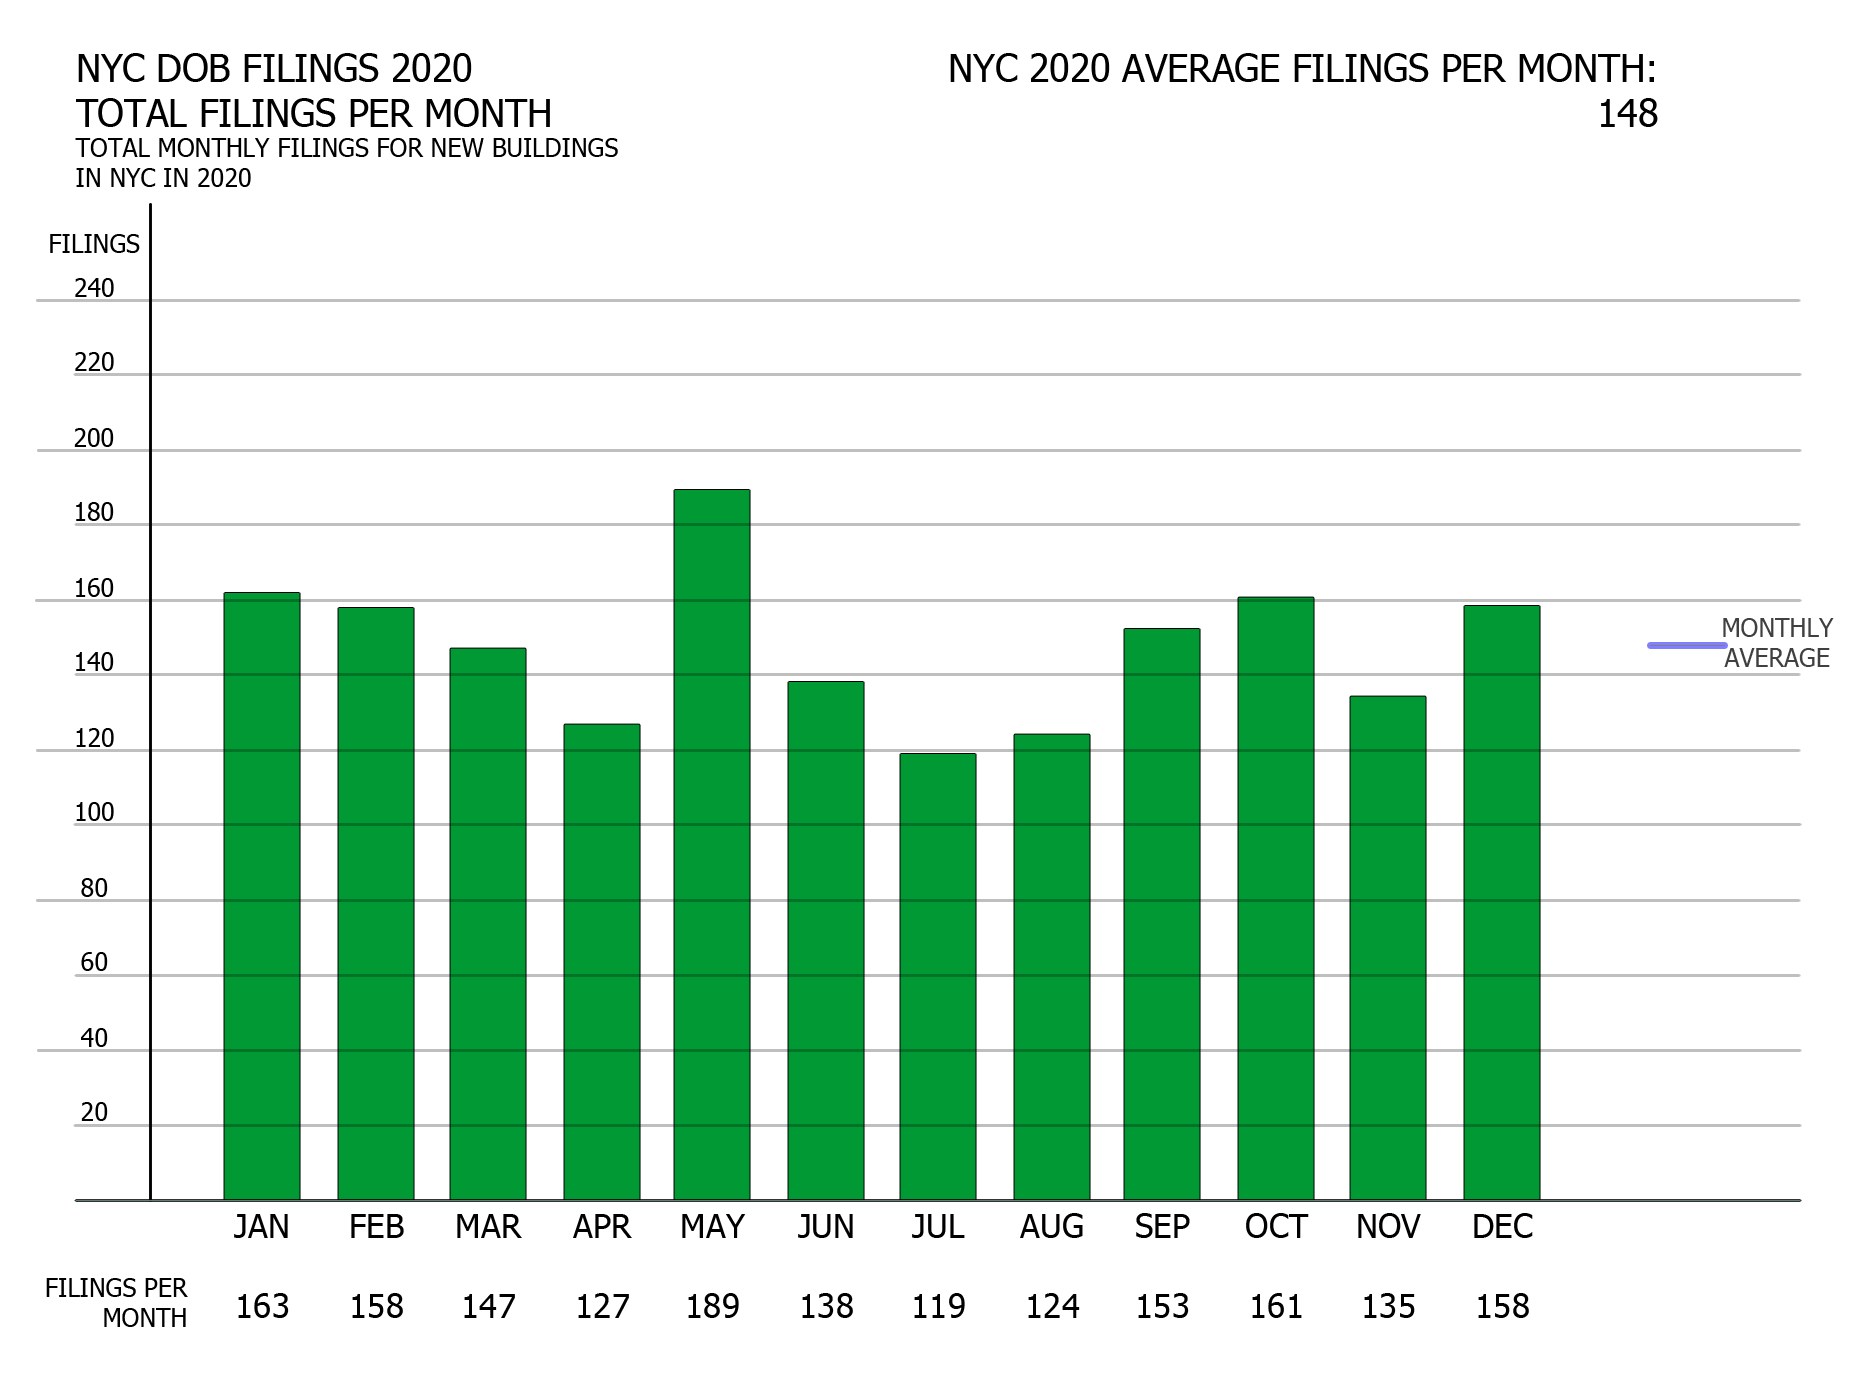 NYC DOB filings in 2020 by month. Credit: Vitali Ogorodnikov